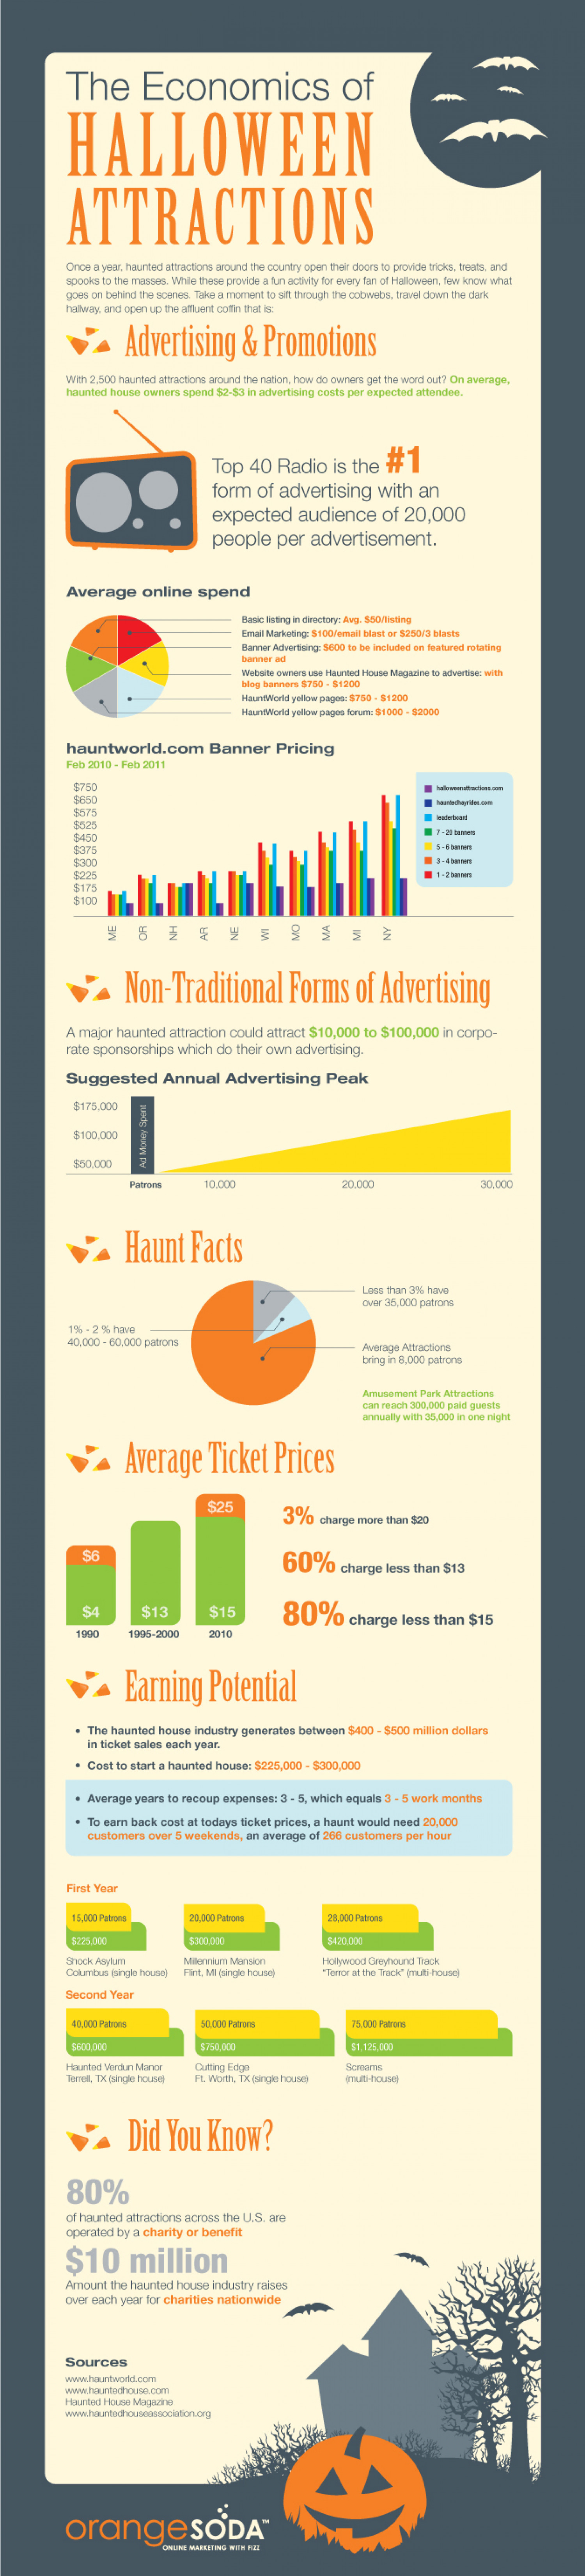 The Economics of Halloween Attractions  Infographic